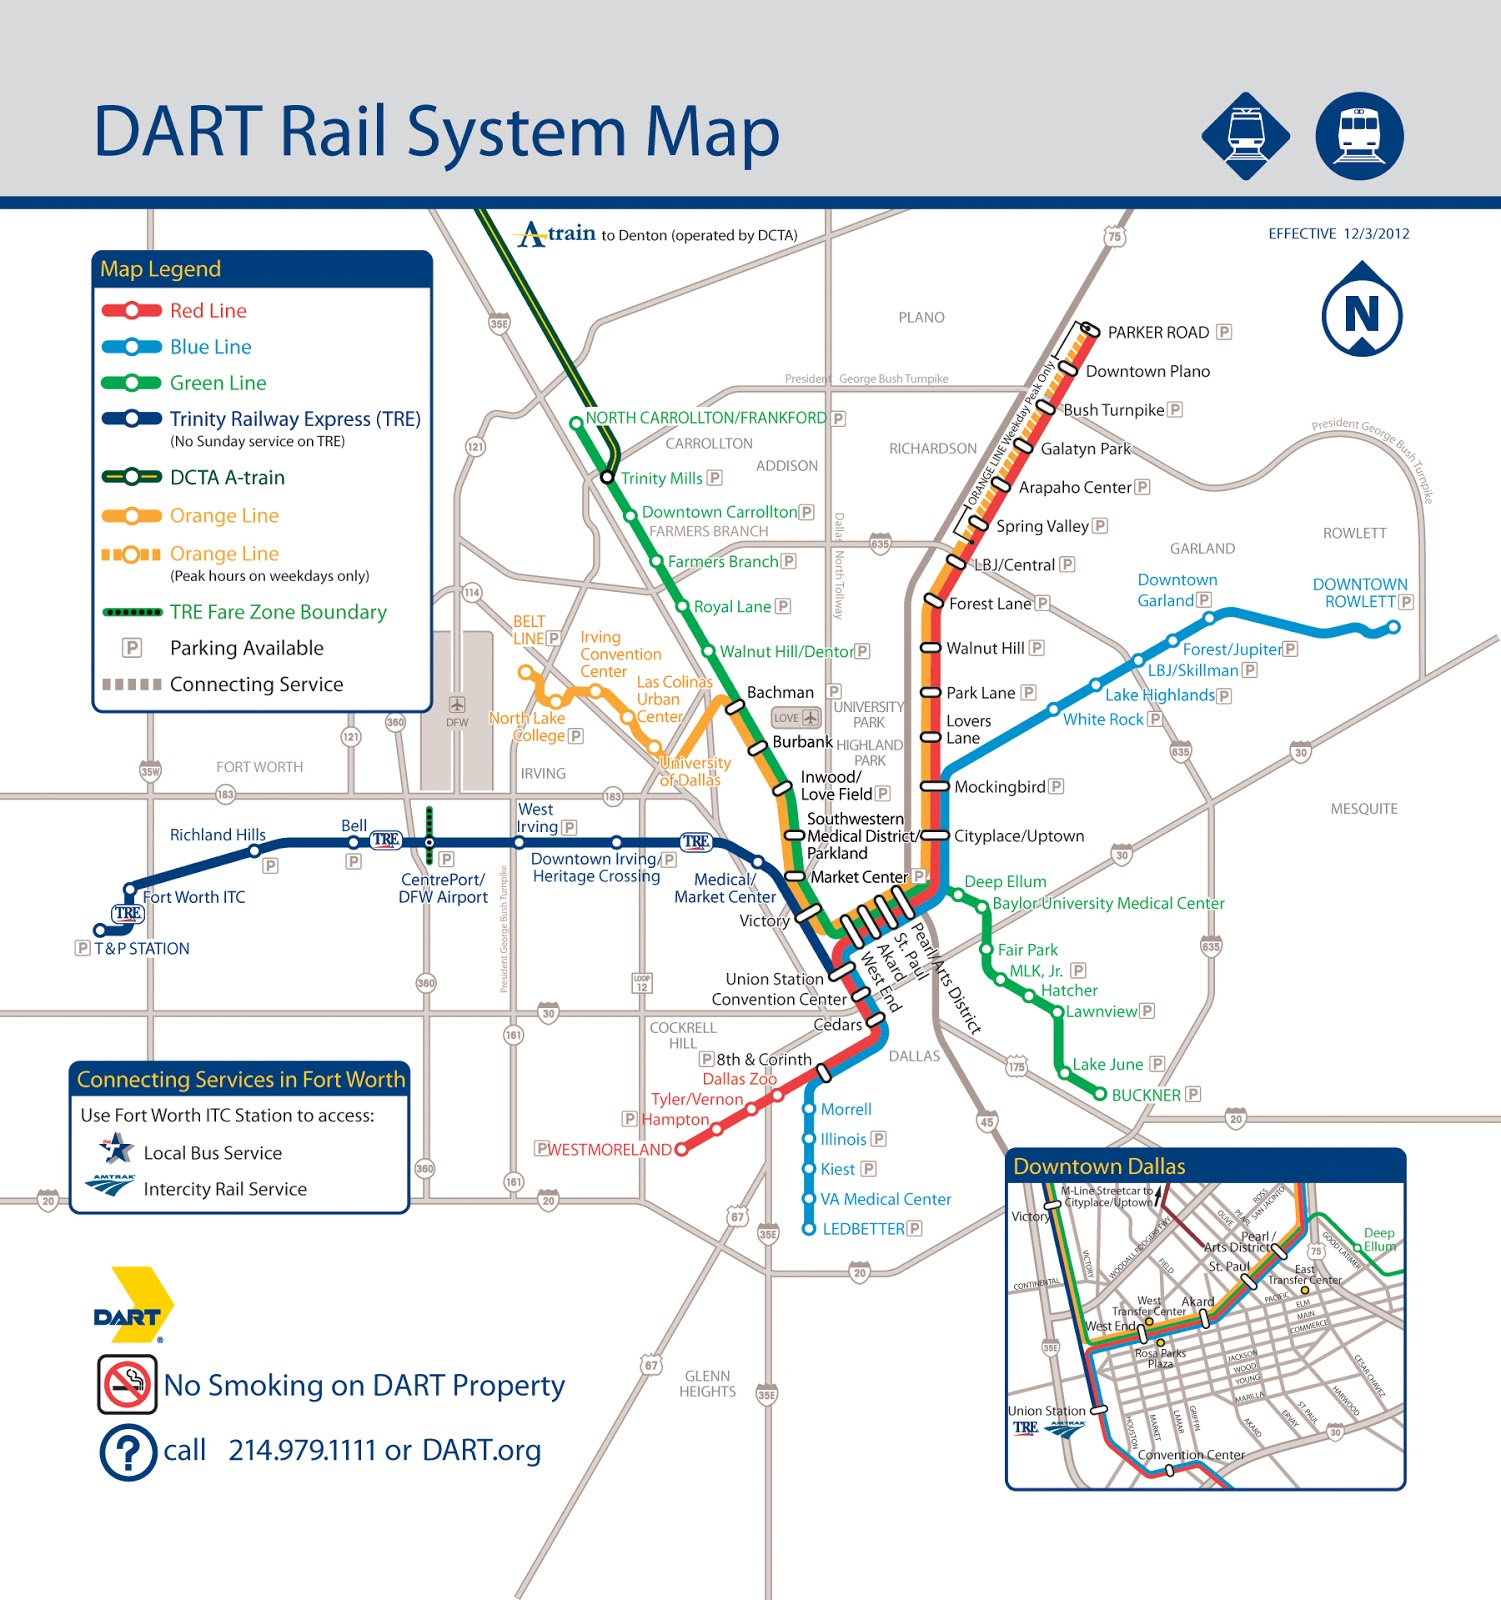 dart rail system map showing existing rail lines